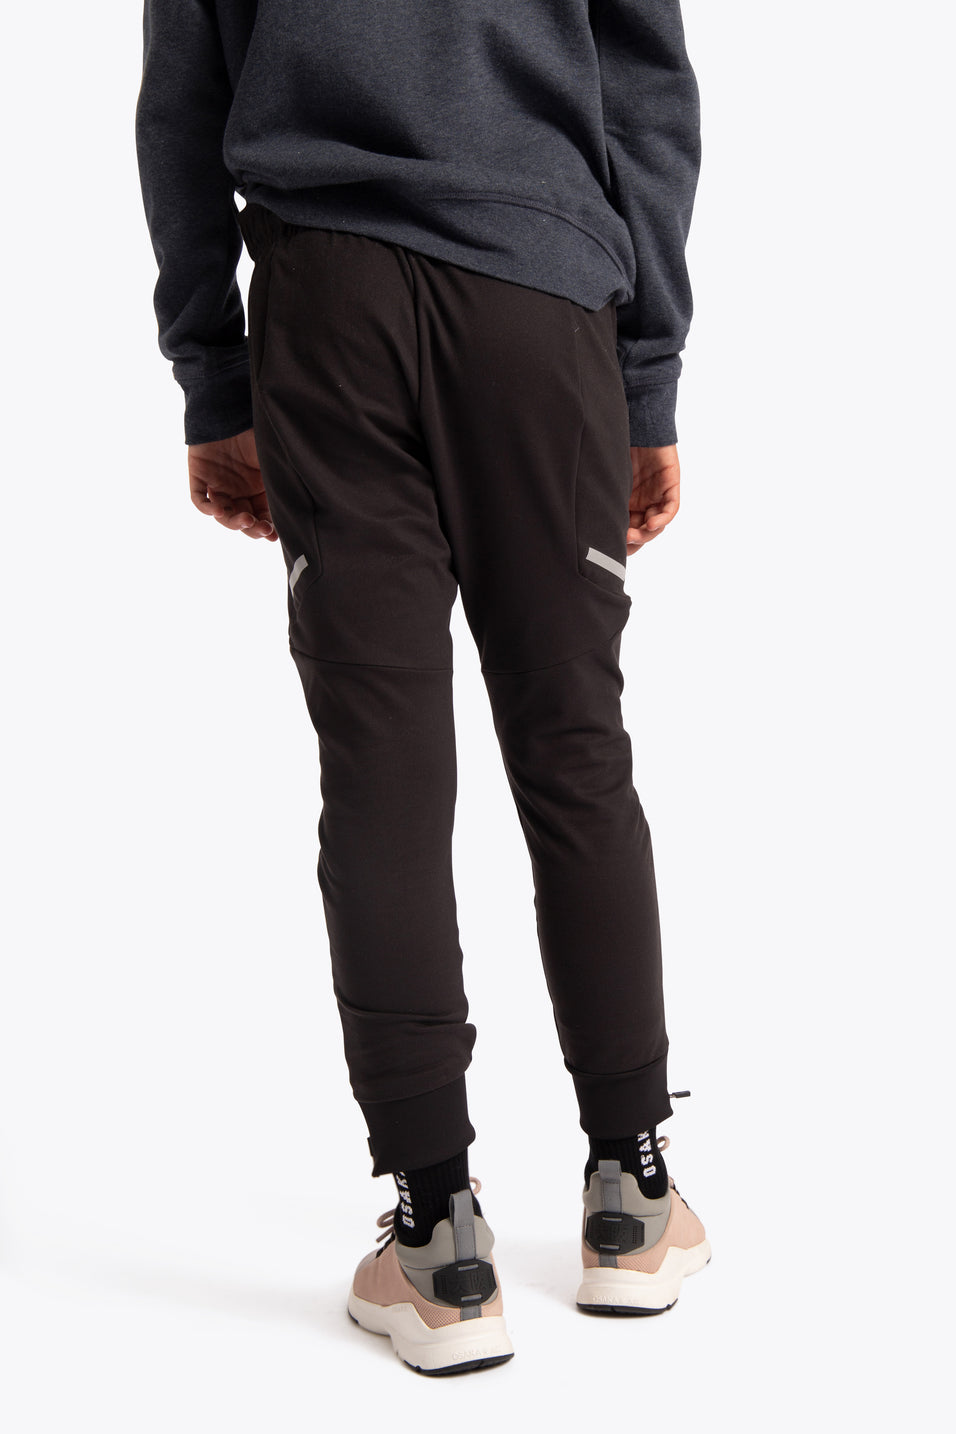 Osakaworld Kids track pants